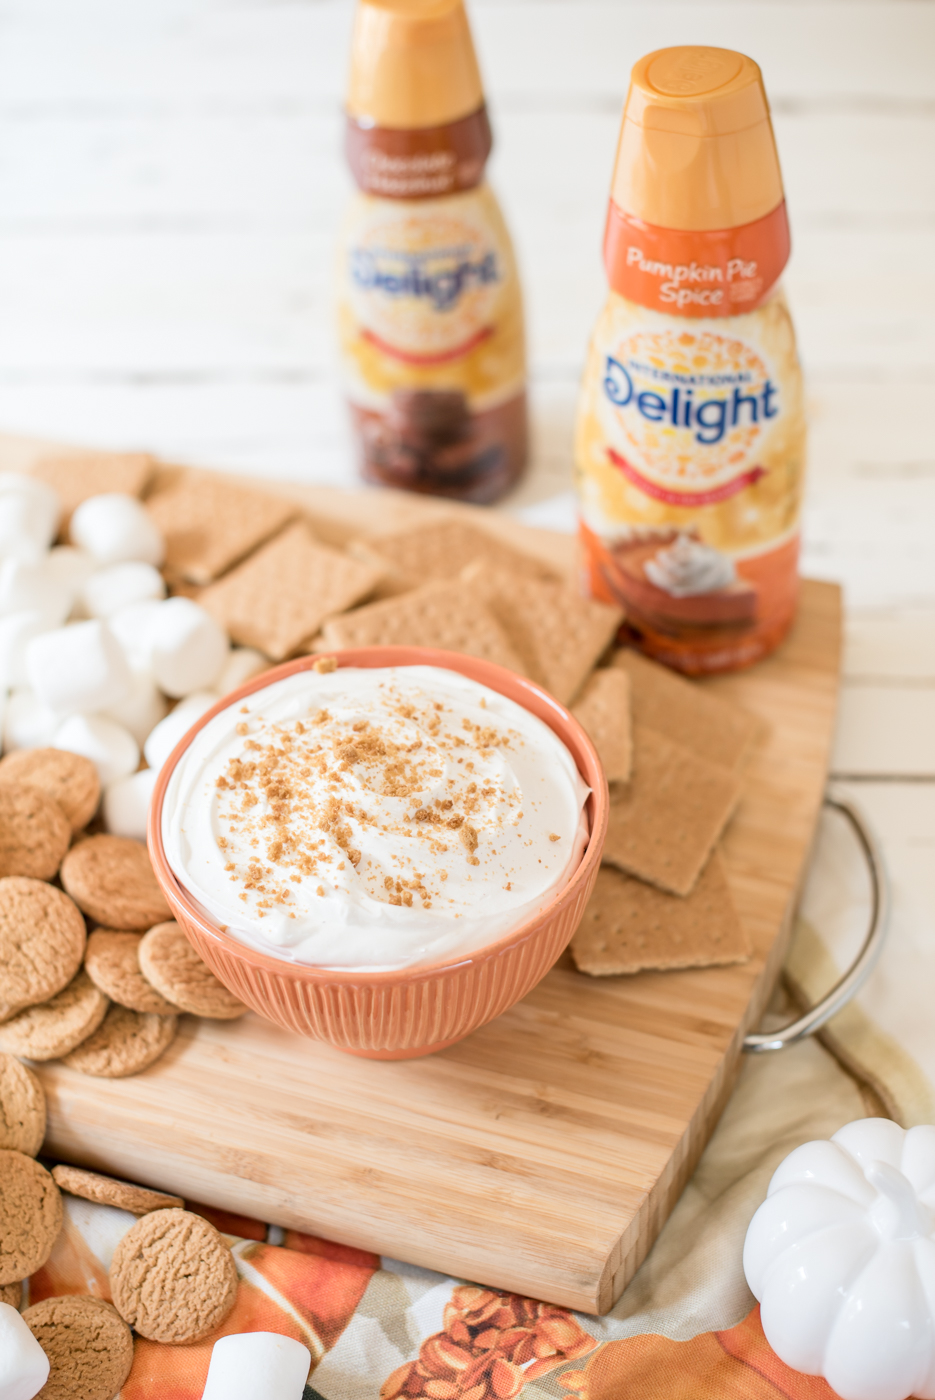 Pumpkin Pie Cheesecake Dip, International Delight Pumpkin Pie Creamer   Pumpkin Pie Cheesecake Dip recipe featured by top US food blogger, Miss Molly Moon